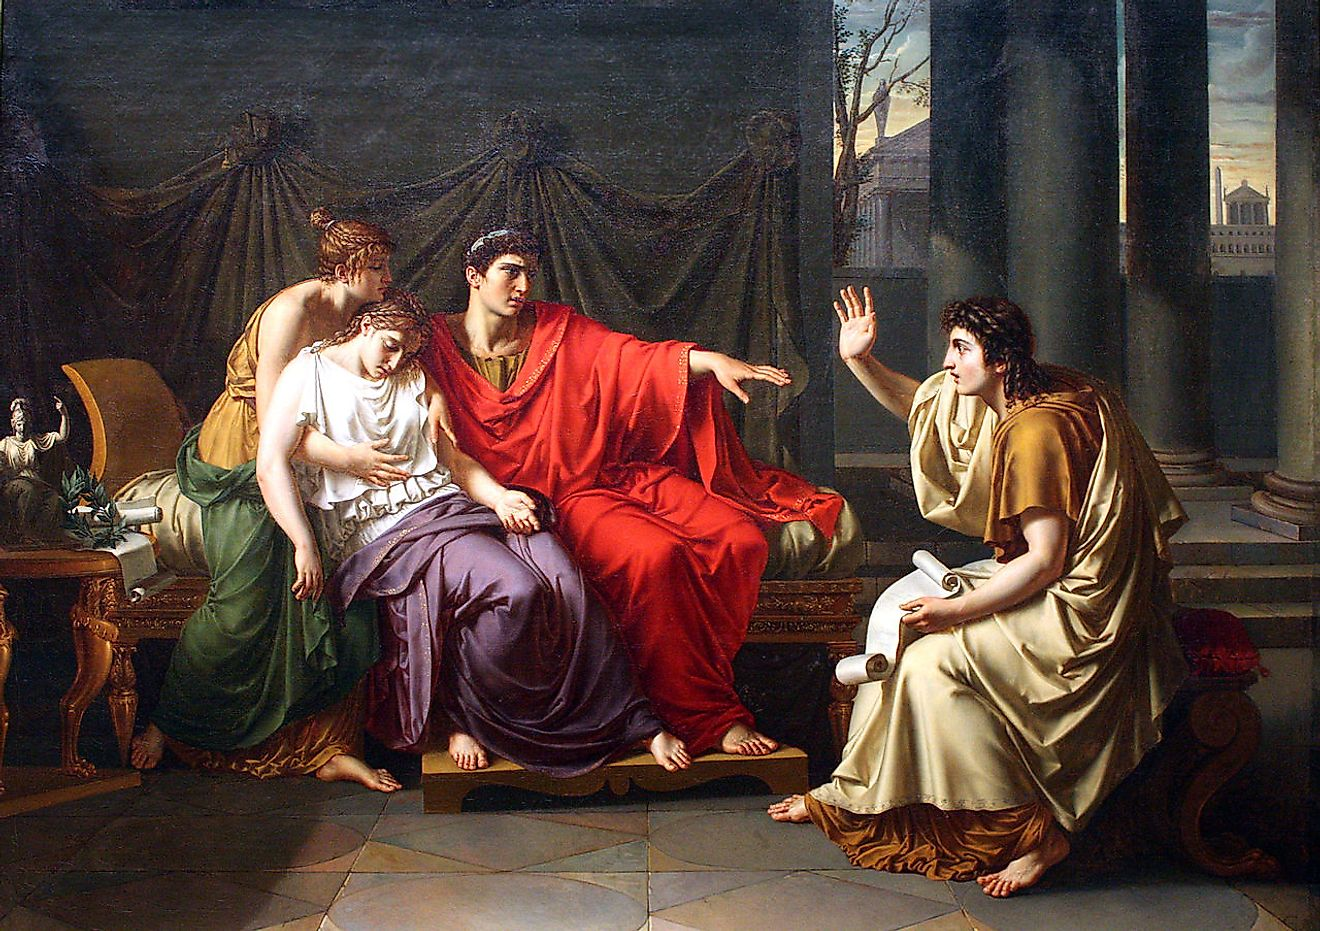 Virgil Reading the Aeneid to Augustus, Octavia, and Livia by Jean-Baptiste Wicar, Art Institute of Chicago. Image credit: Jean-Baptiste Wicar/Public domain